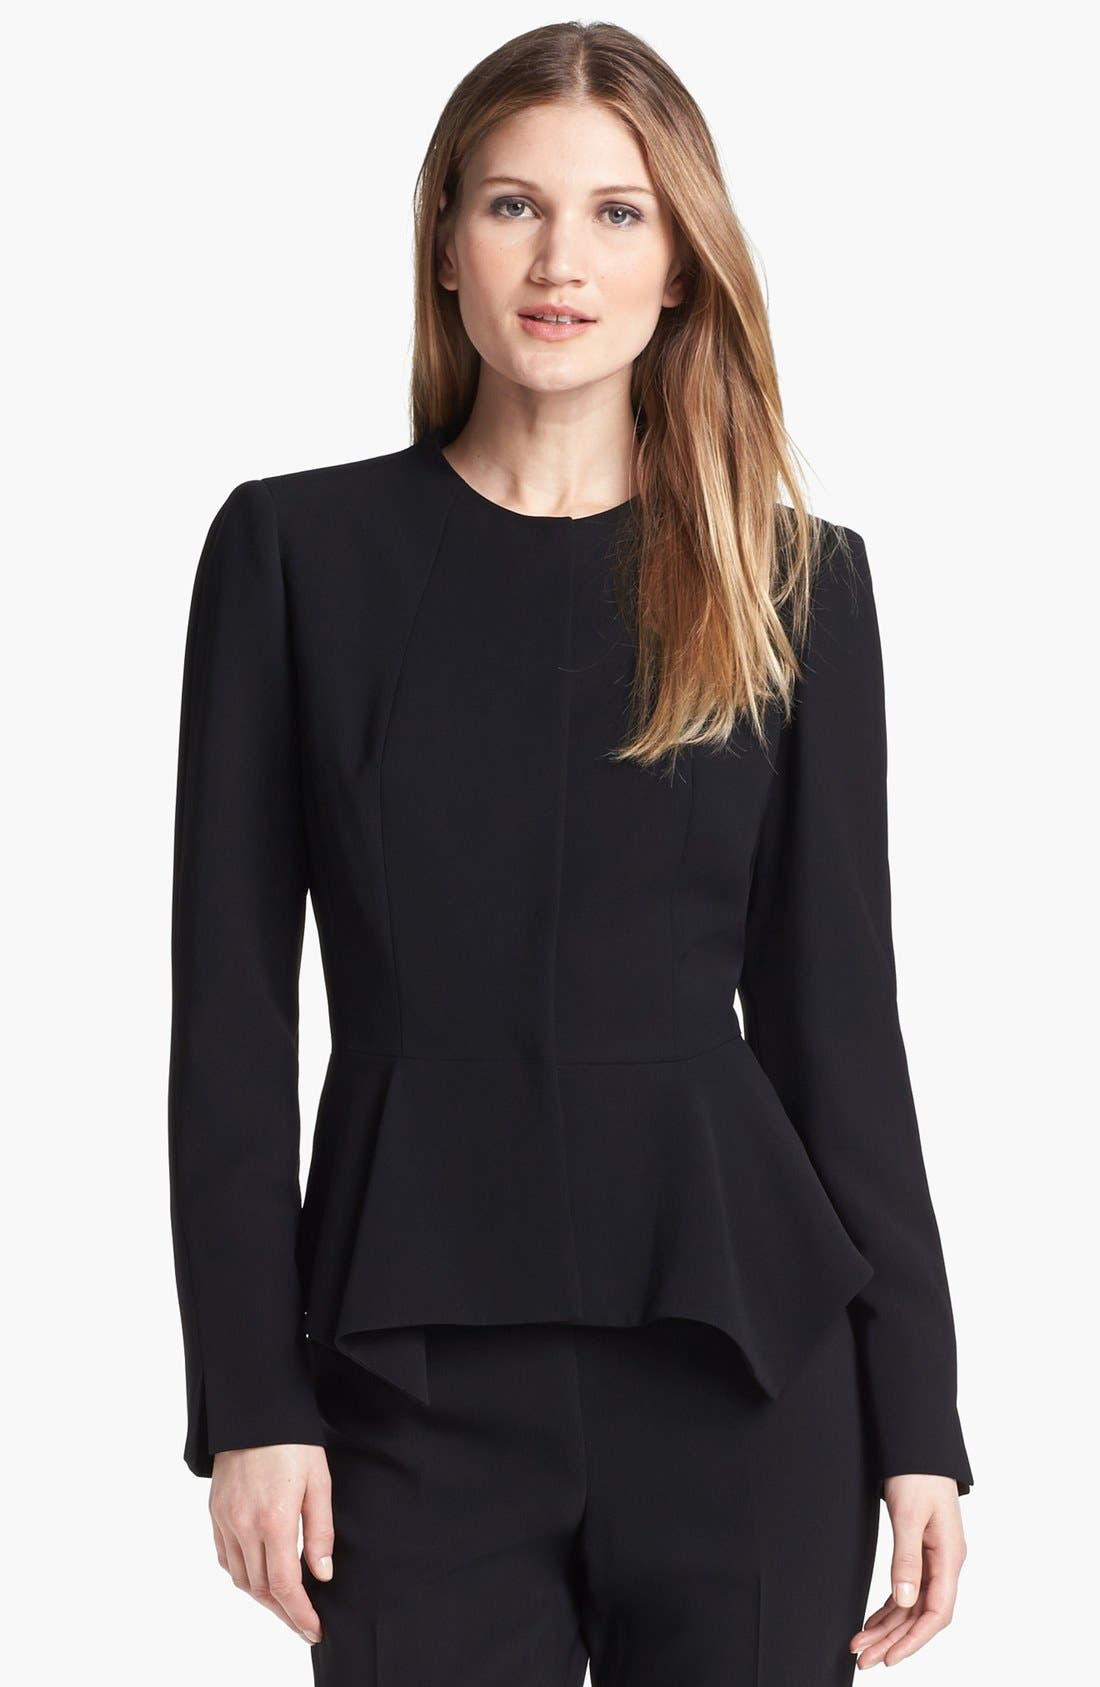 Main Image - Lafayette 148 New York 'Lissette - Finesse Crepe' Jacket